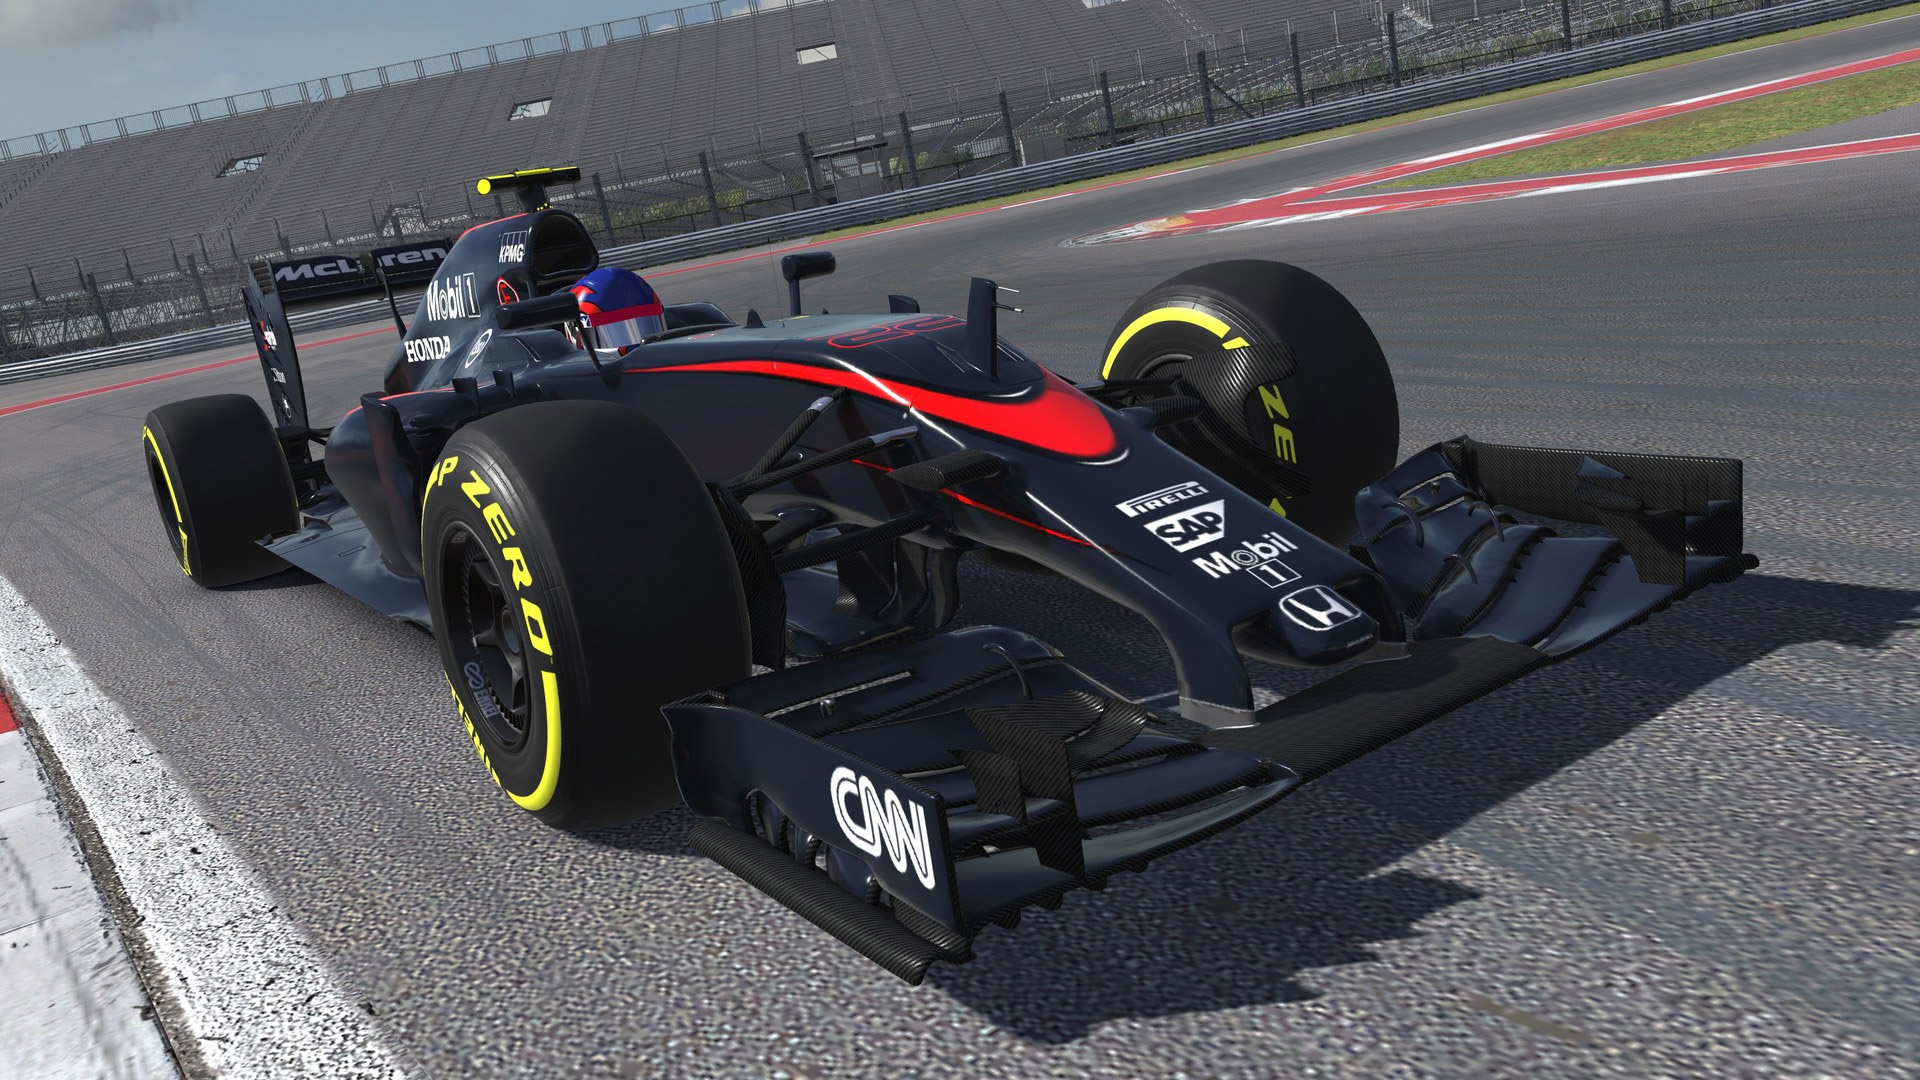 Hands-on: 'iRacing' Gets Initial Oculus Rift CV1 Support